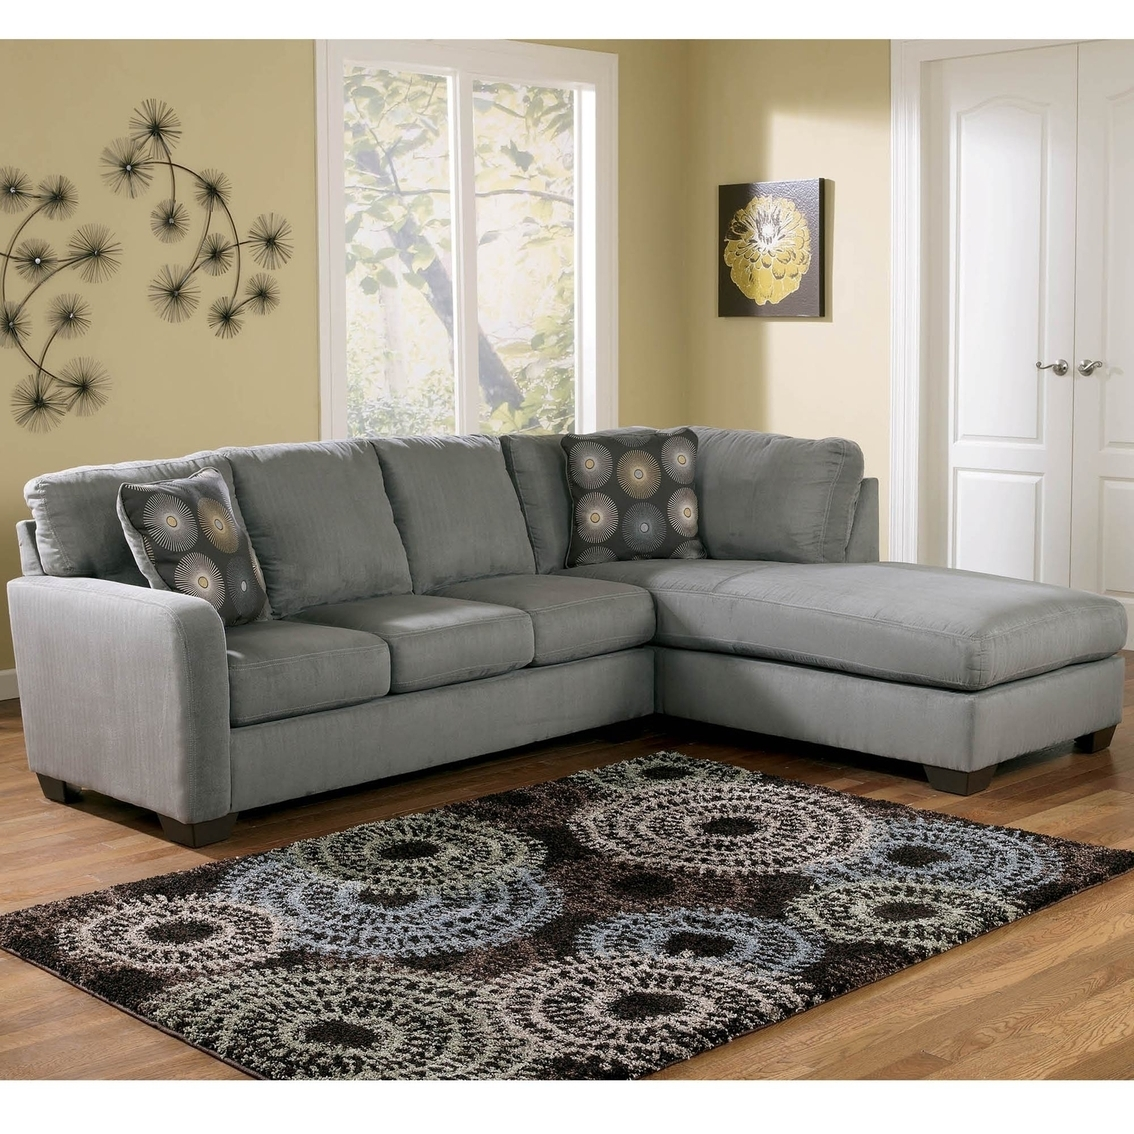 Signature Designashley Zella 2 Pc. Sectional Raf Corner Chaise with Cosmos Grey 2 Piece Sectionals With Laf Chaise (Image 23 of 30)